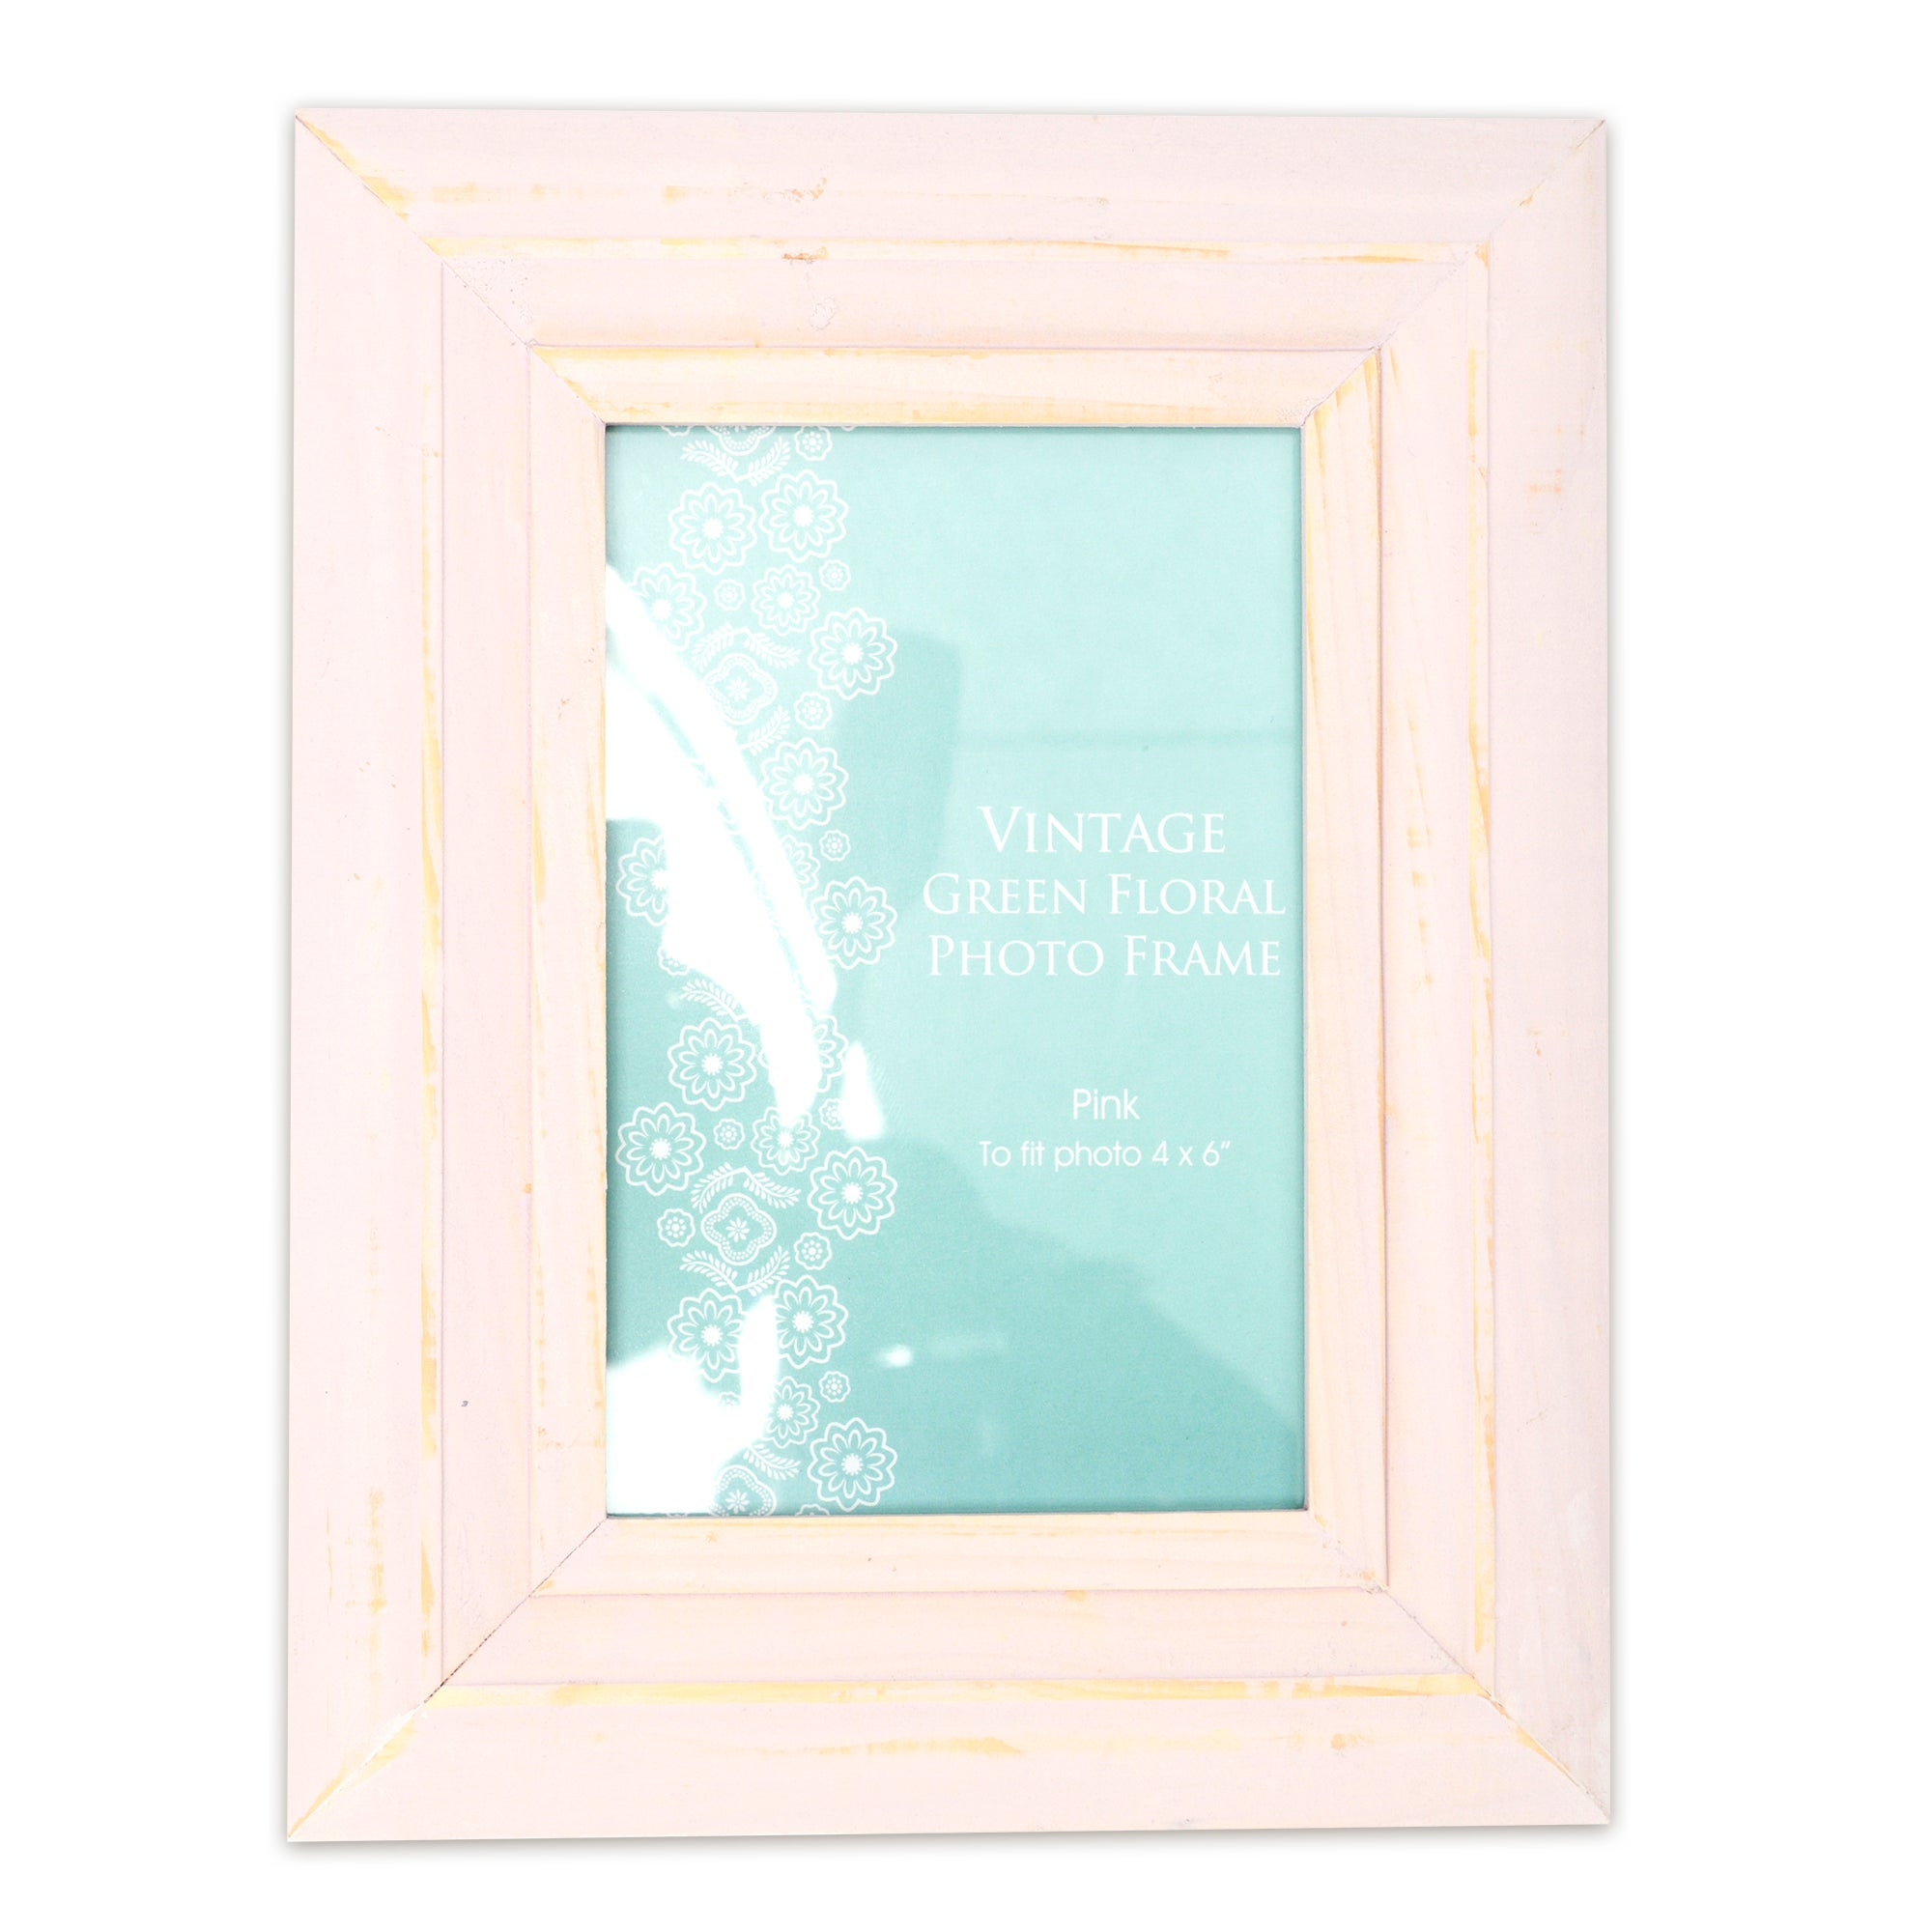 Vintage Green Floral Collection Distressed Pink Photo Frame